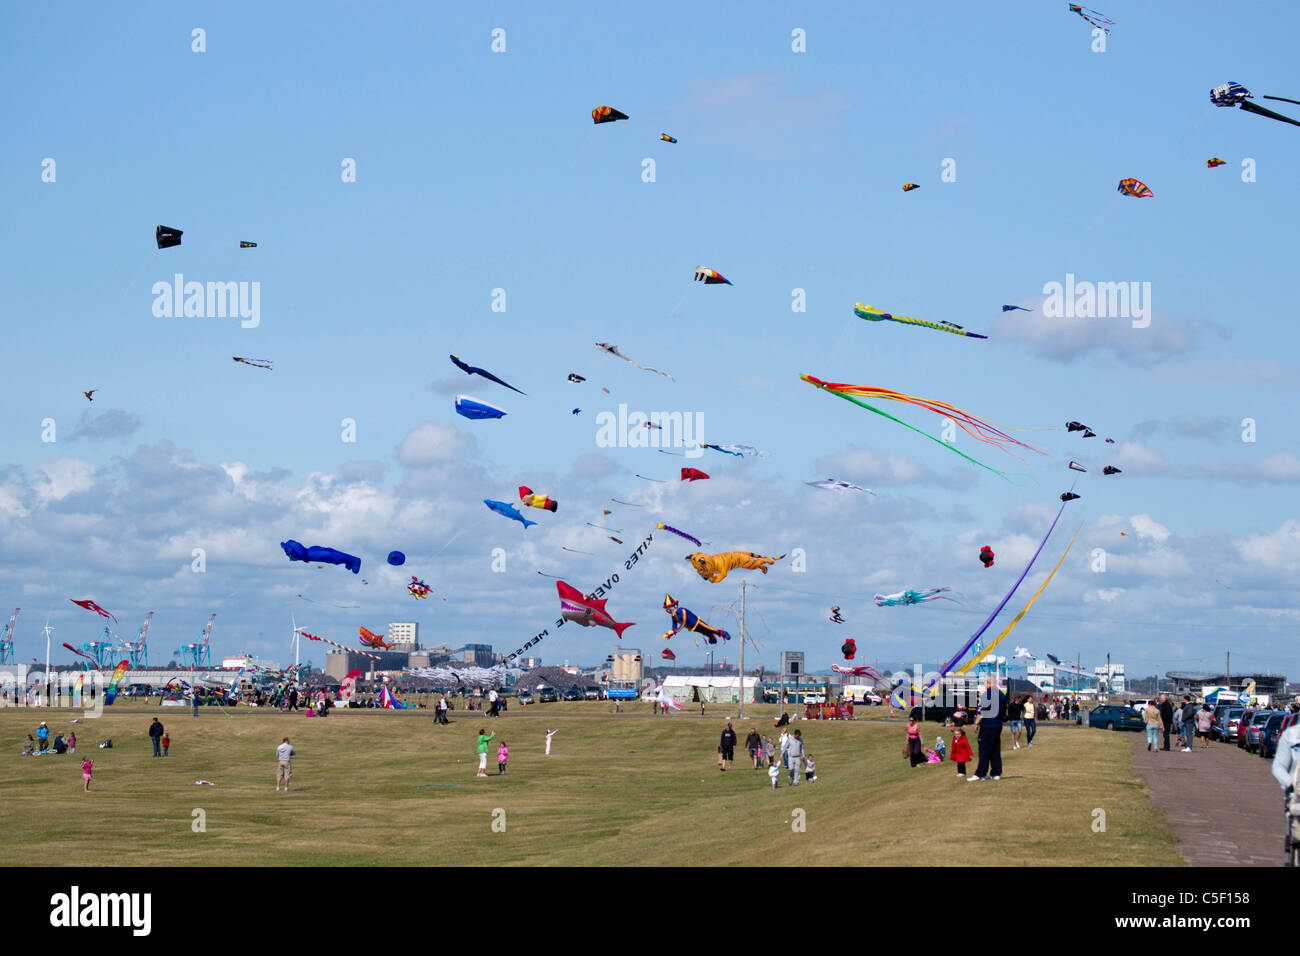 kites at the Wirral kite festival held at New Brighton 2011. - Stock Image